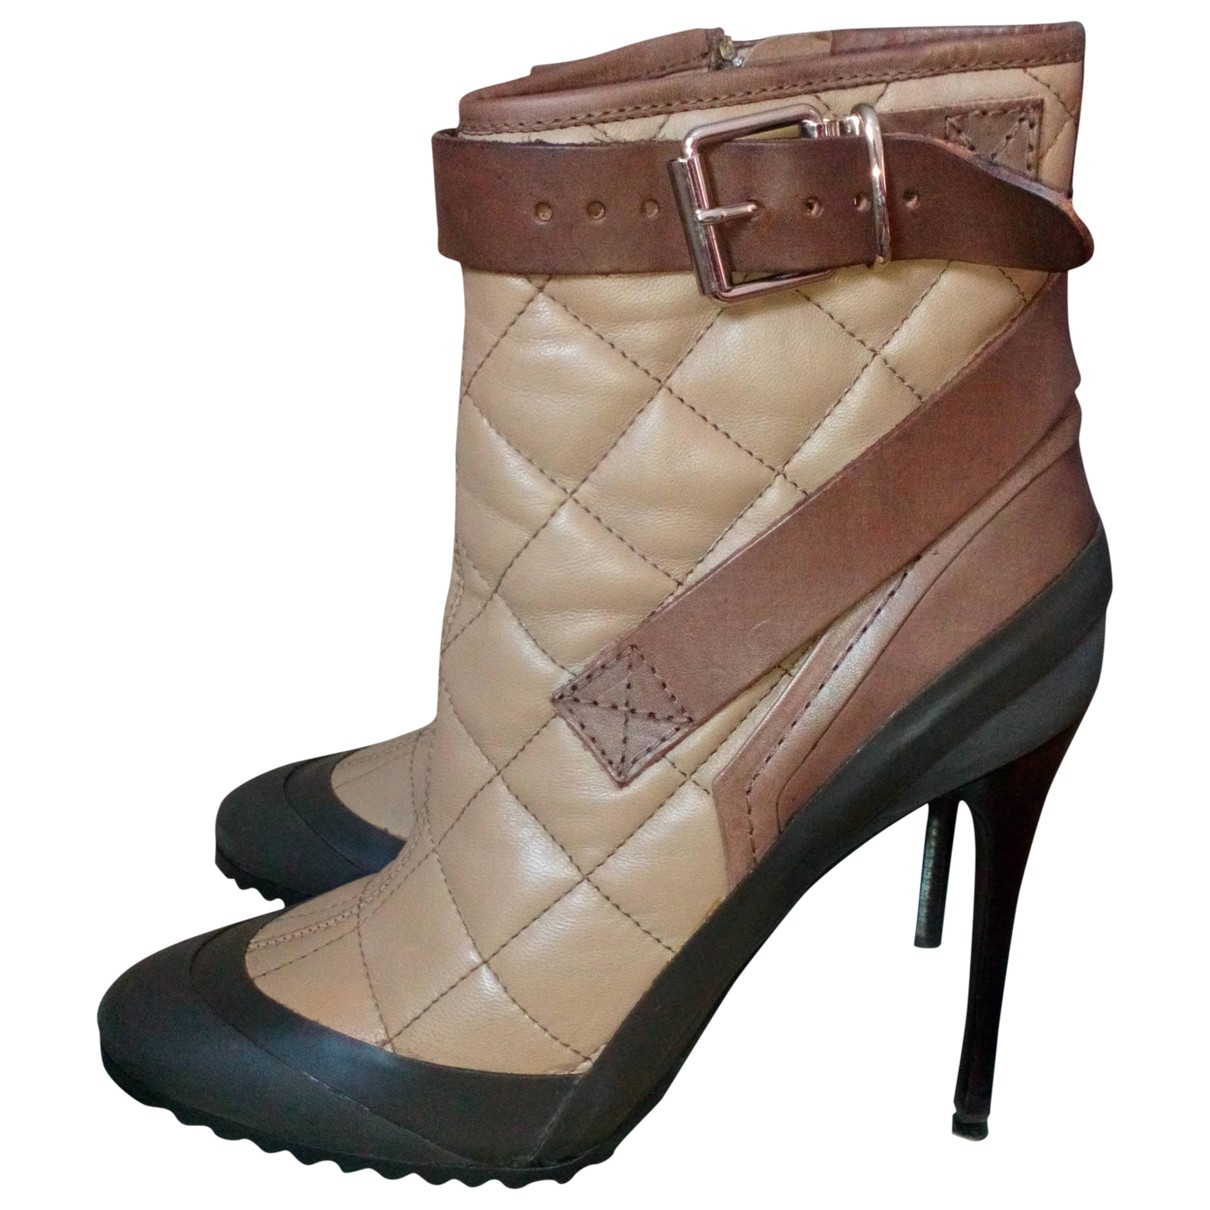 Burberry \N Beige Leather Boots for Women 39 EU